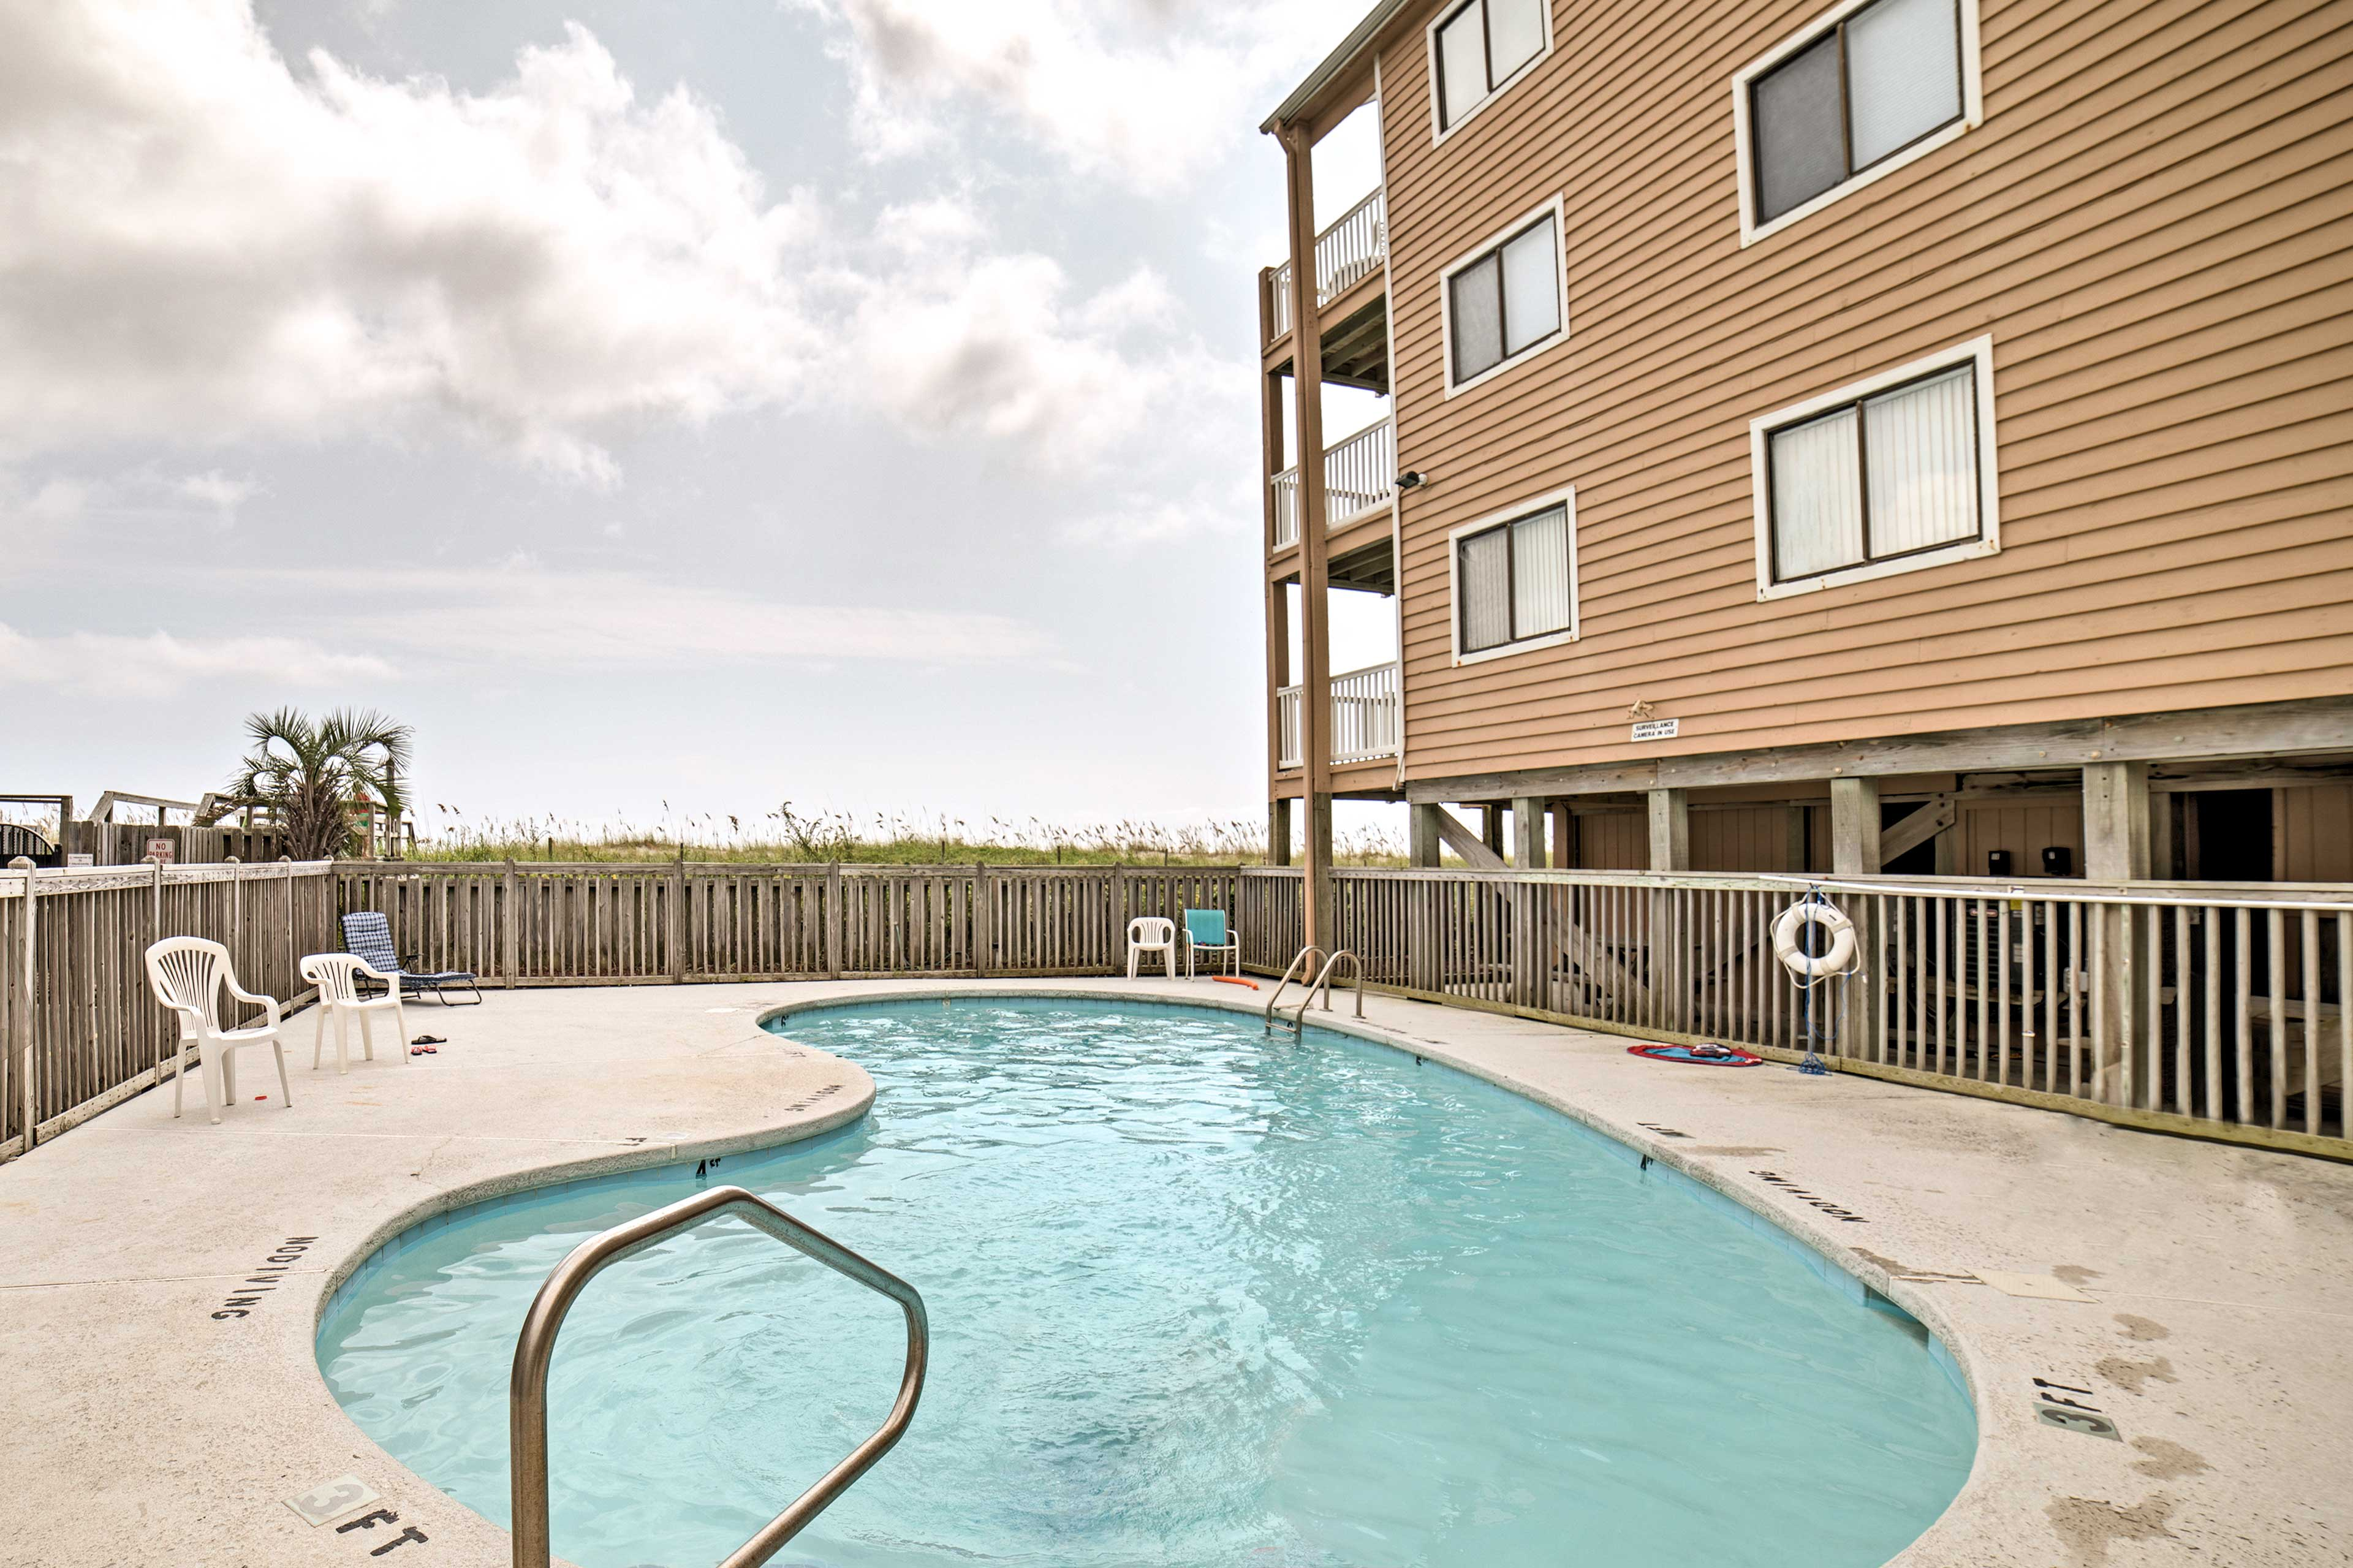 Enjoy access to the community pool, along with instant beach access!